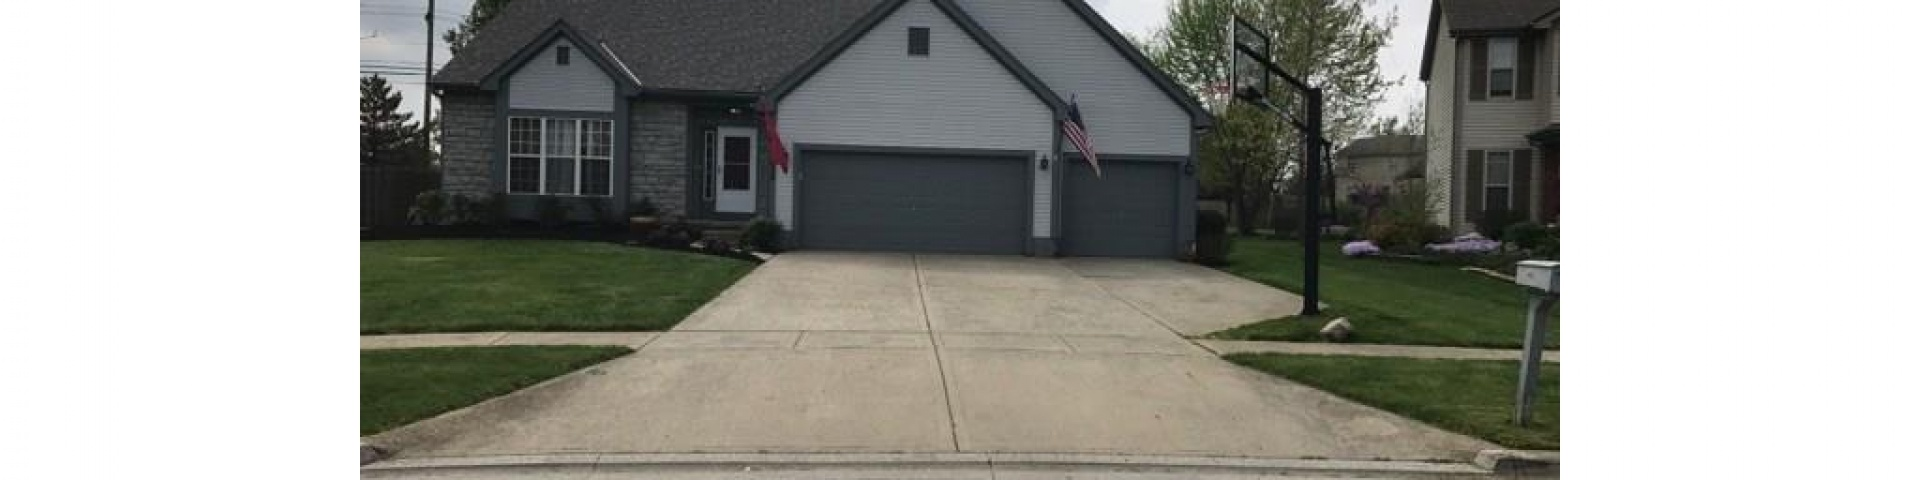 1432 Great Hunter,Grove City,Ohio 43123,3 Bedrooms Bedrooms,11 Rooms Rooms,2 BathroomsBathrooms,Single family,Great Hunter,735185